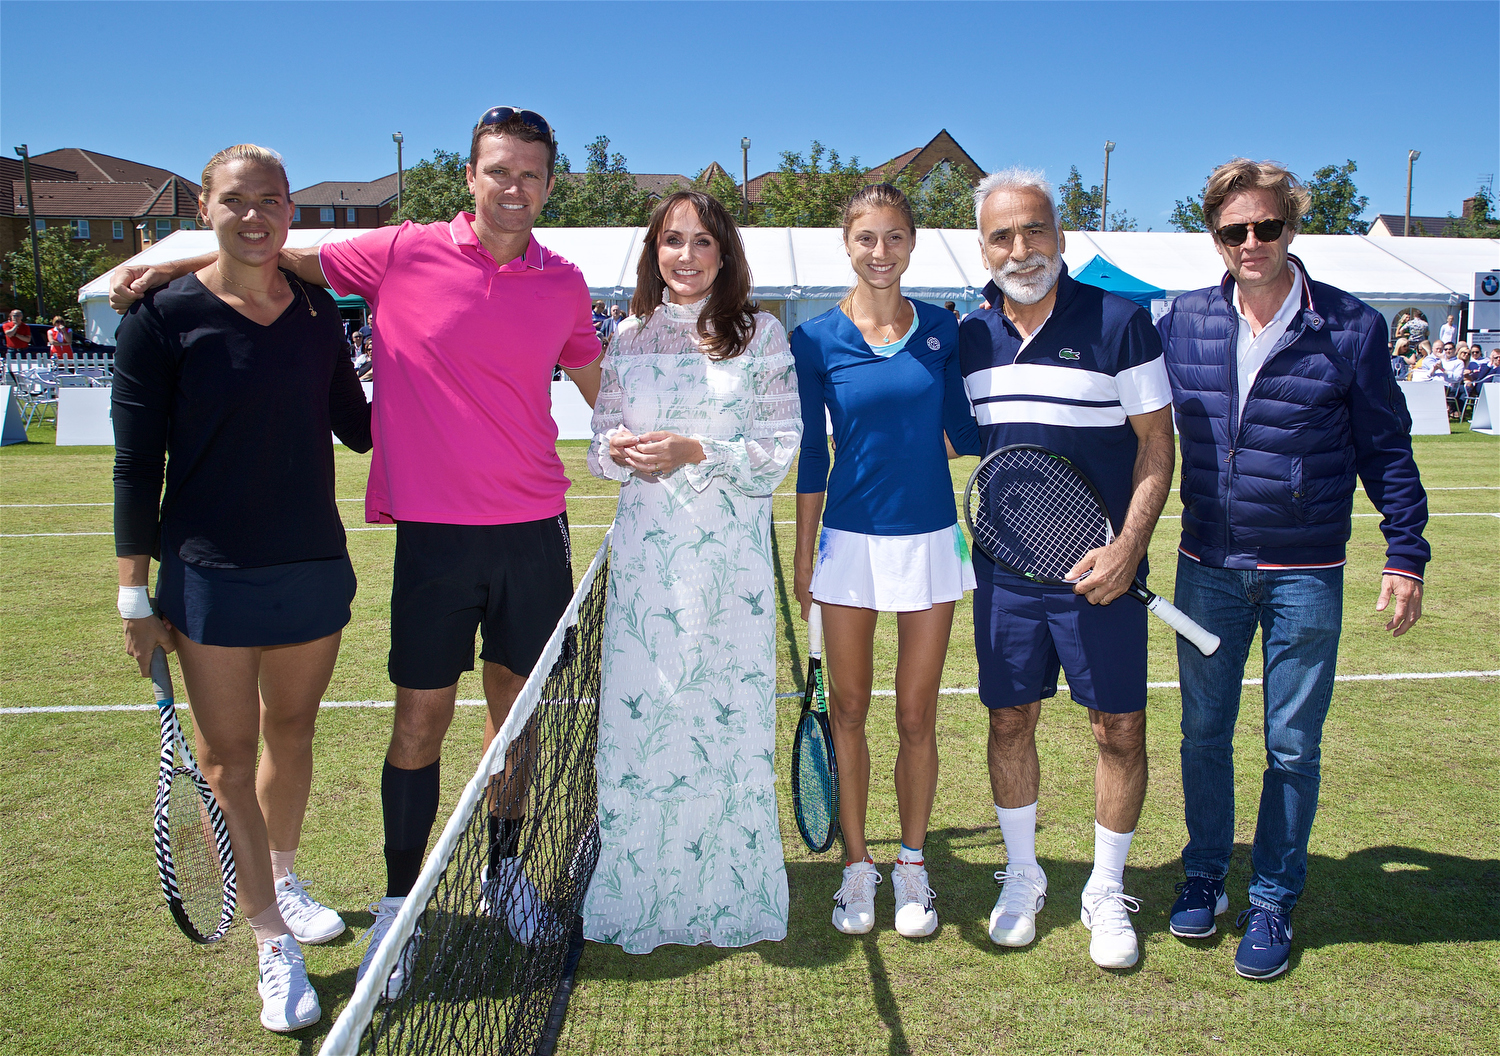 LIVERPOOL, ENGLAND - Friday, June 21, 2019: Kaia Kanepi (EST), Robert Kendrick (USA) and Corinna Dentoni (ITA) & Mansour Bahrami (IRN) with Anders Borg. during Day Two of the Liverpool International Tennis Tournament 2019 at the Liverpool Cricket Club. (Pic by David Rawcliffe/Propaganda)